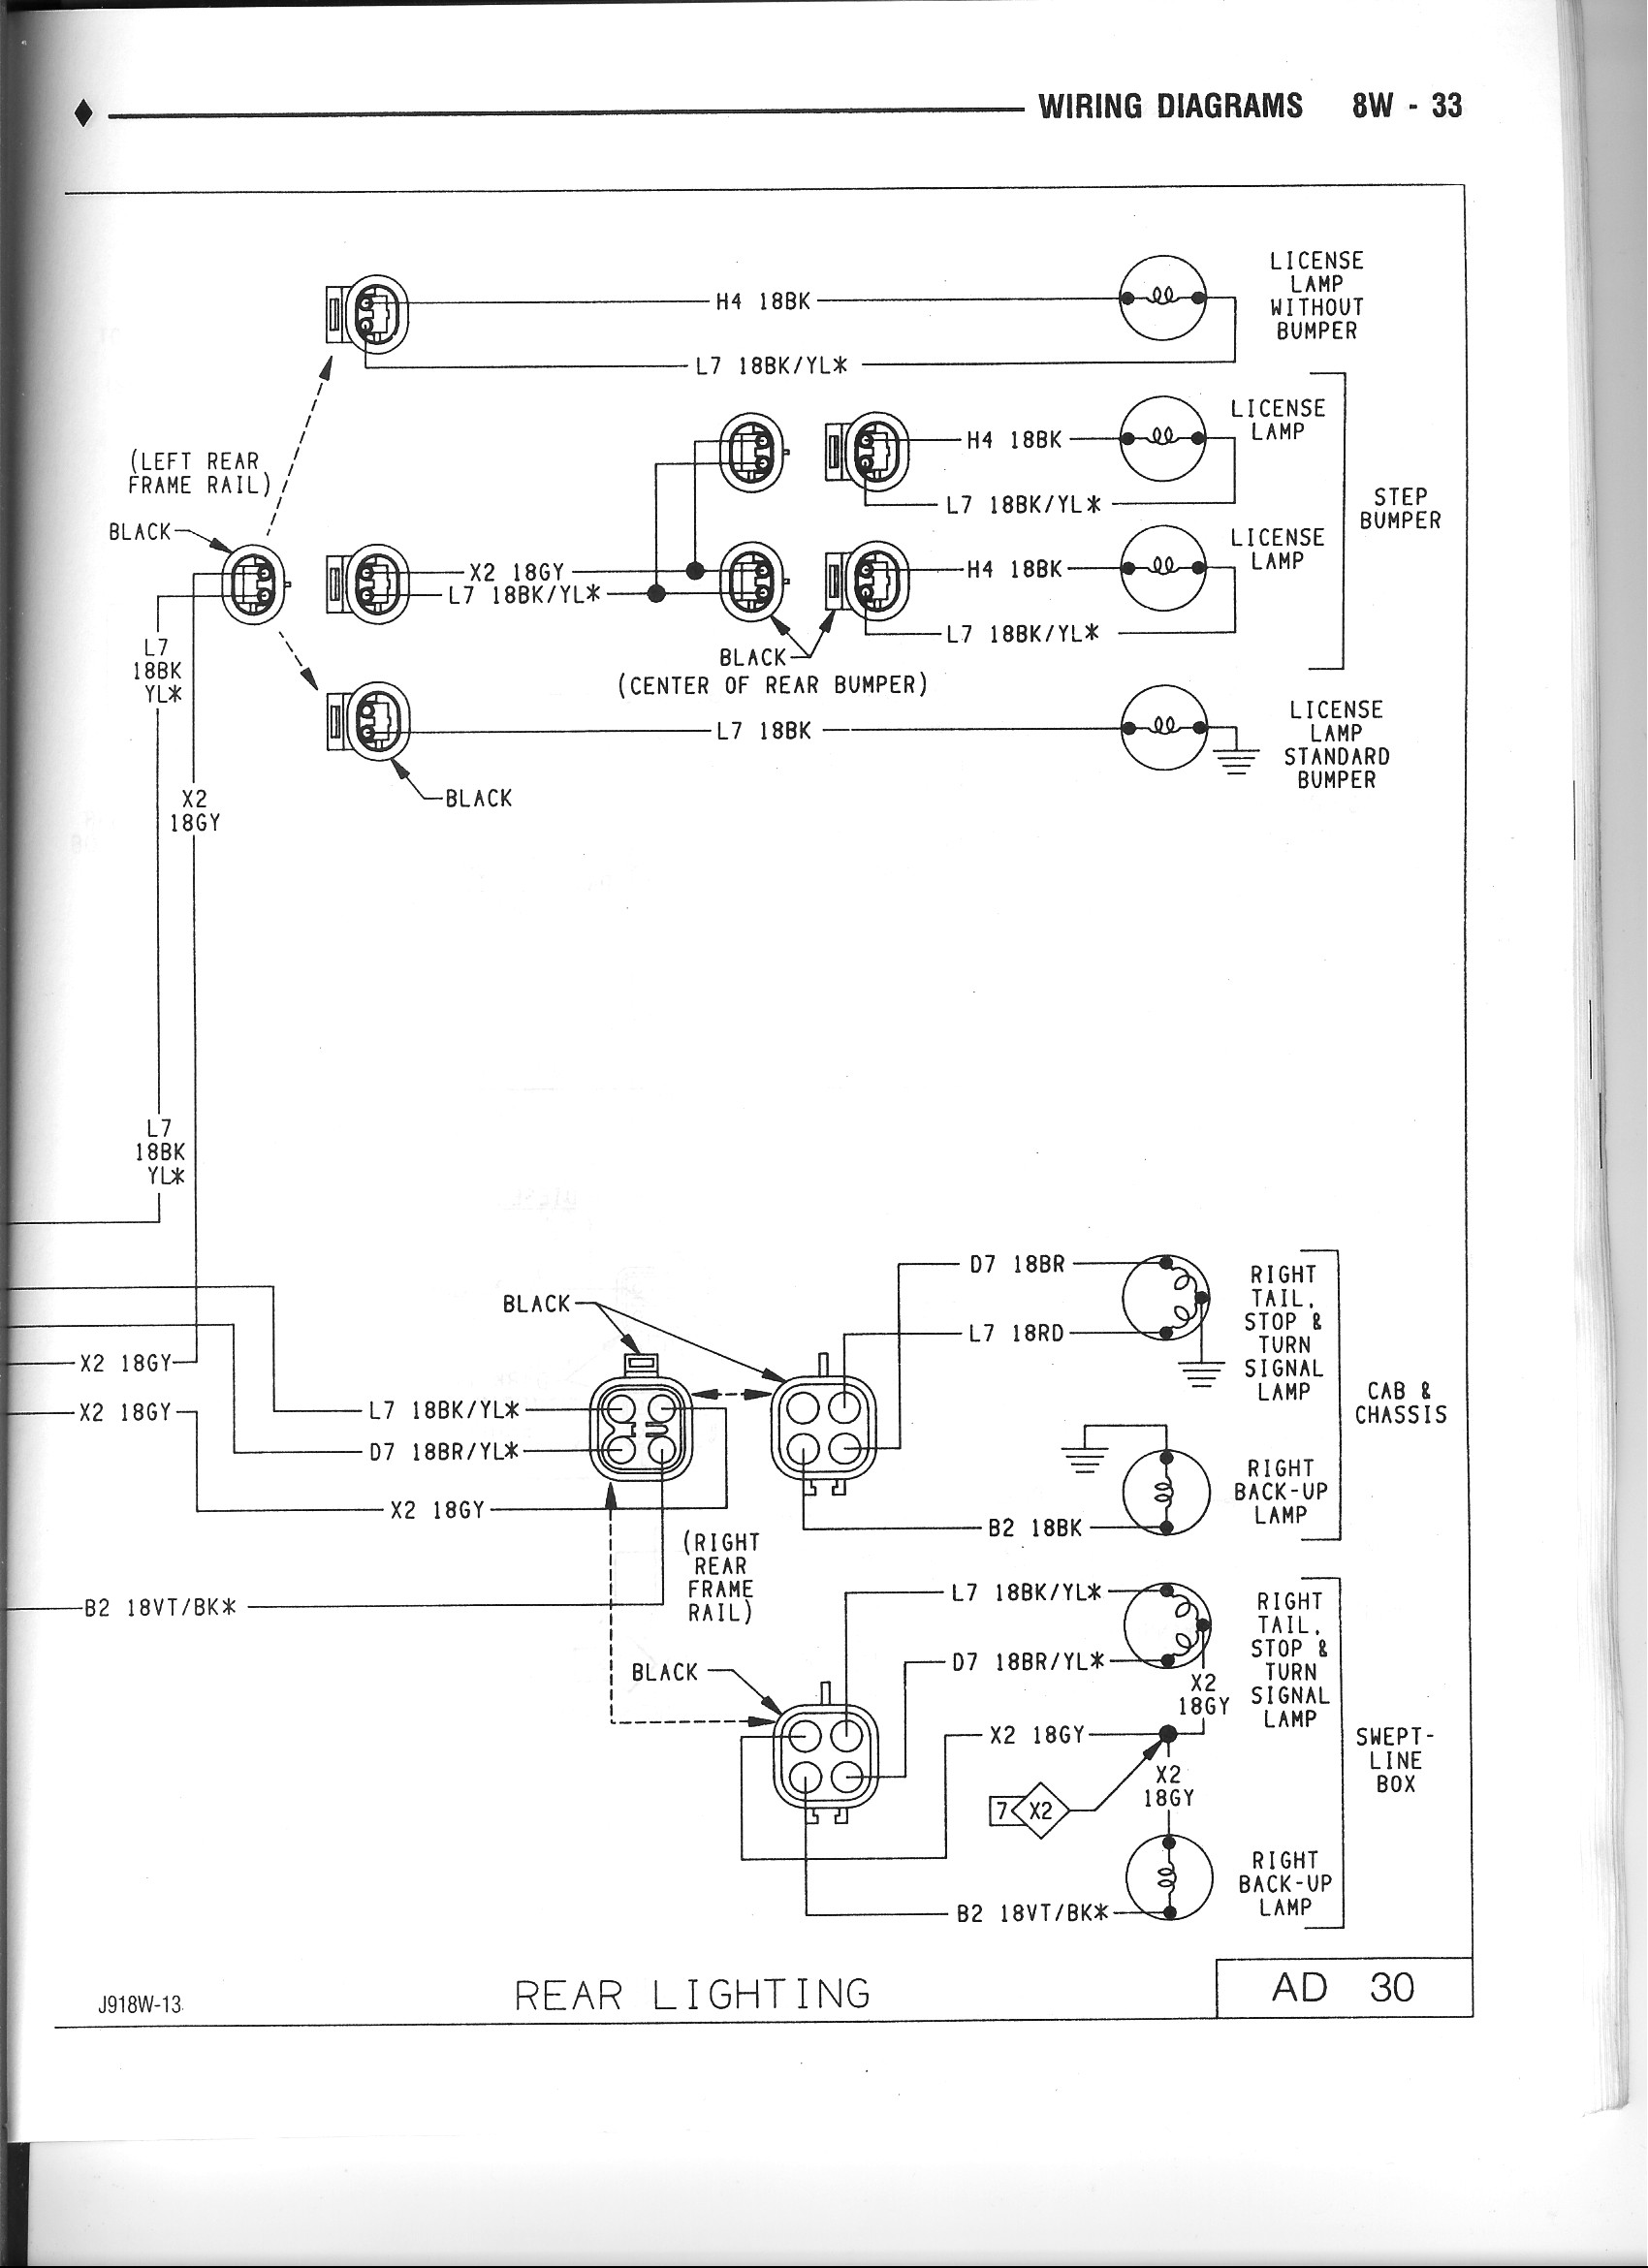 2002 Dodge Ram Tail Light Wiring Diagram Just Another 2004 Dually 3500 94 Rear Library Rh 48 Akszer Eu Trailer